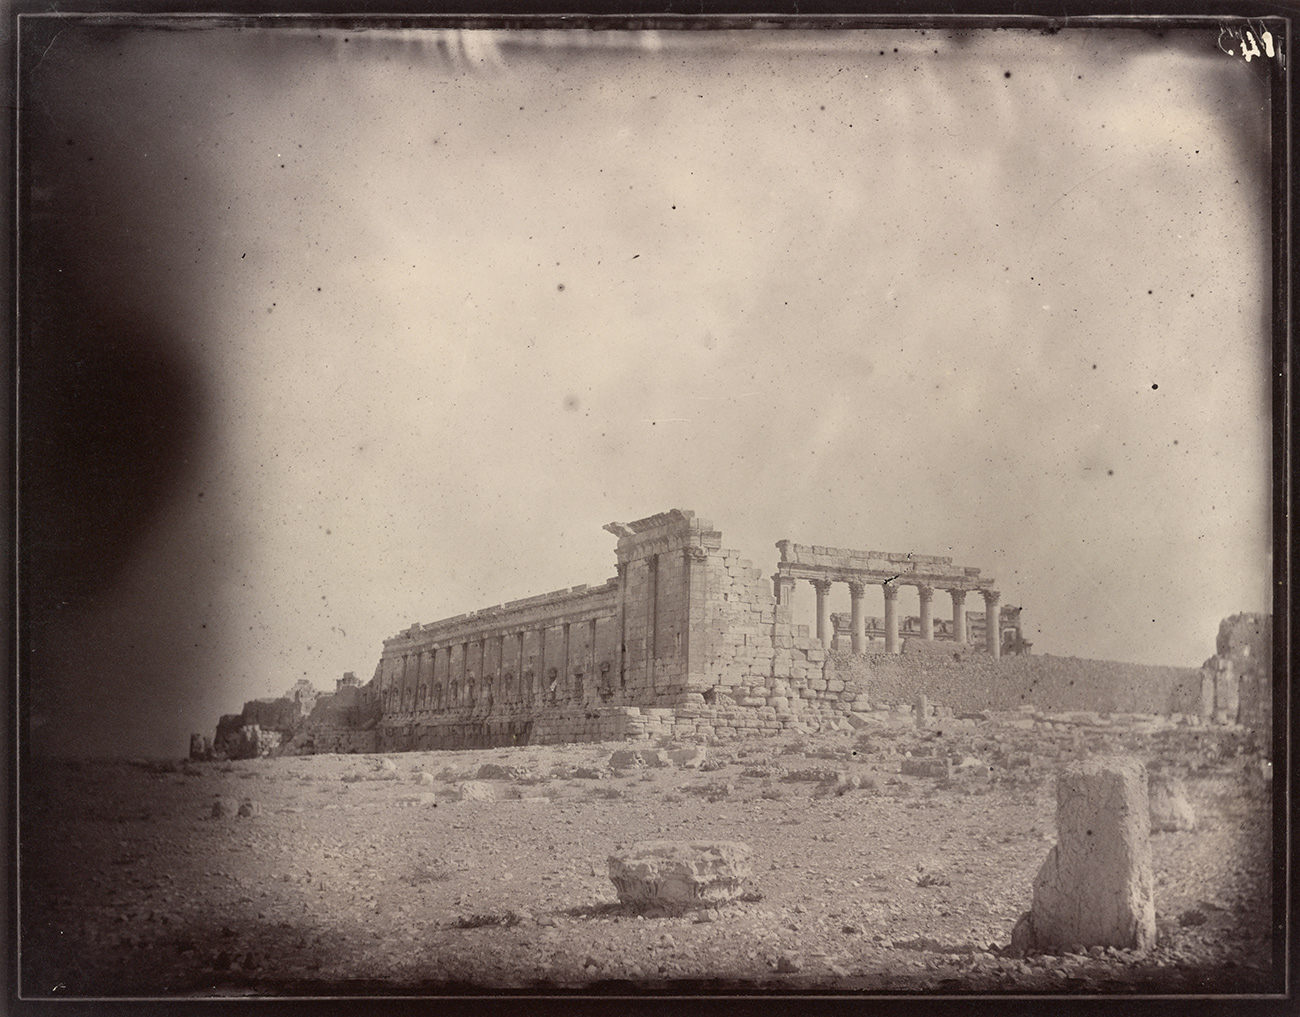 Temple of Bel, southwest exterior corner of the courtyard, 1864, Louis Vignes. Albumen print. 8.8 x 11.4 in. The Getty Research Institute, 2015.R.15